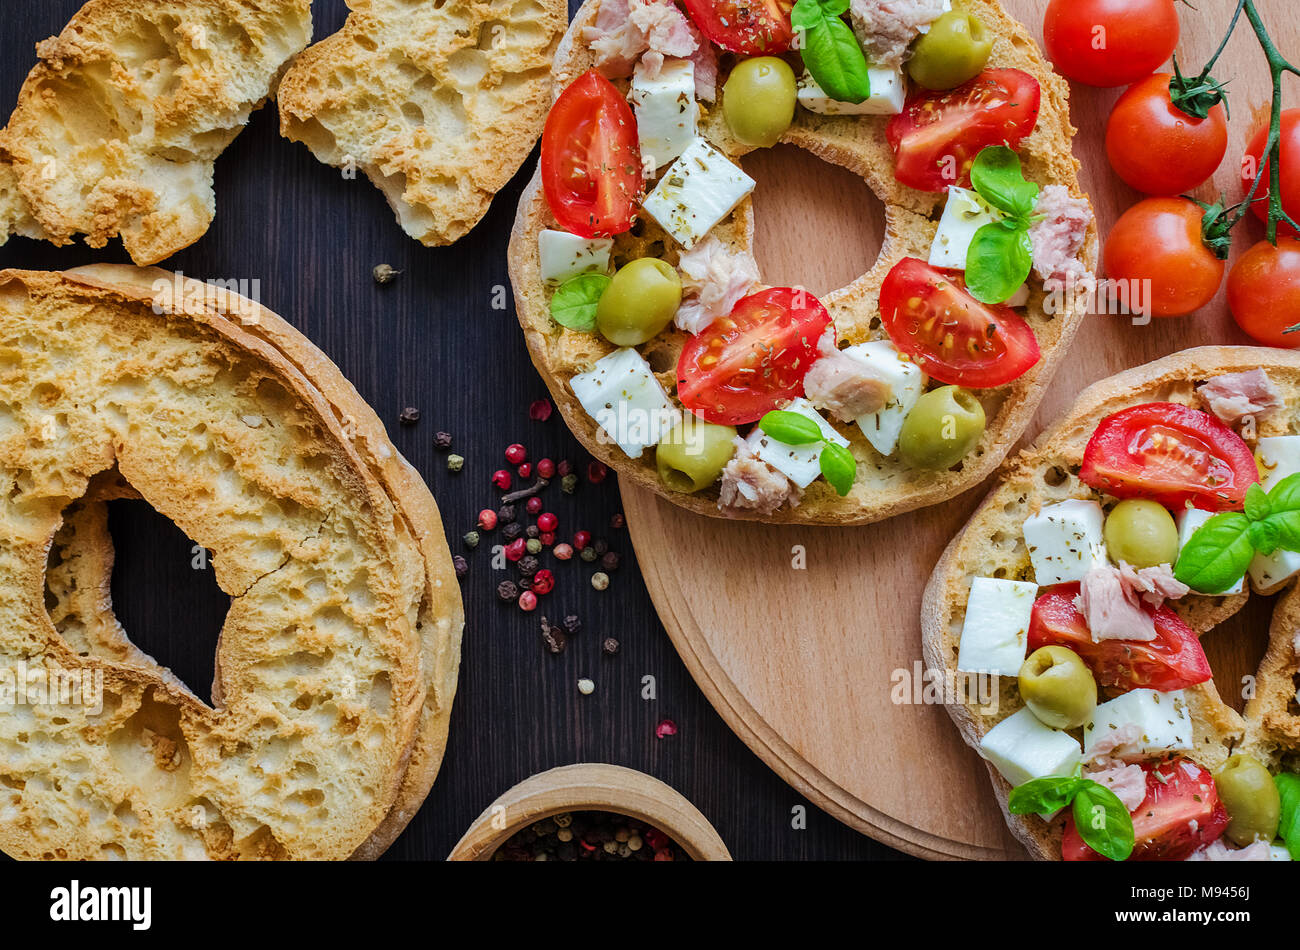 Italian appetizer Friselle. Italian dried bread Friselle on wooden board with tomatoes cherry, olives, tuna, basil and peppercorns. Italian food. Heal - Stock Image